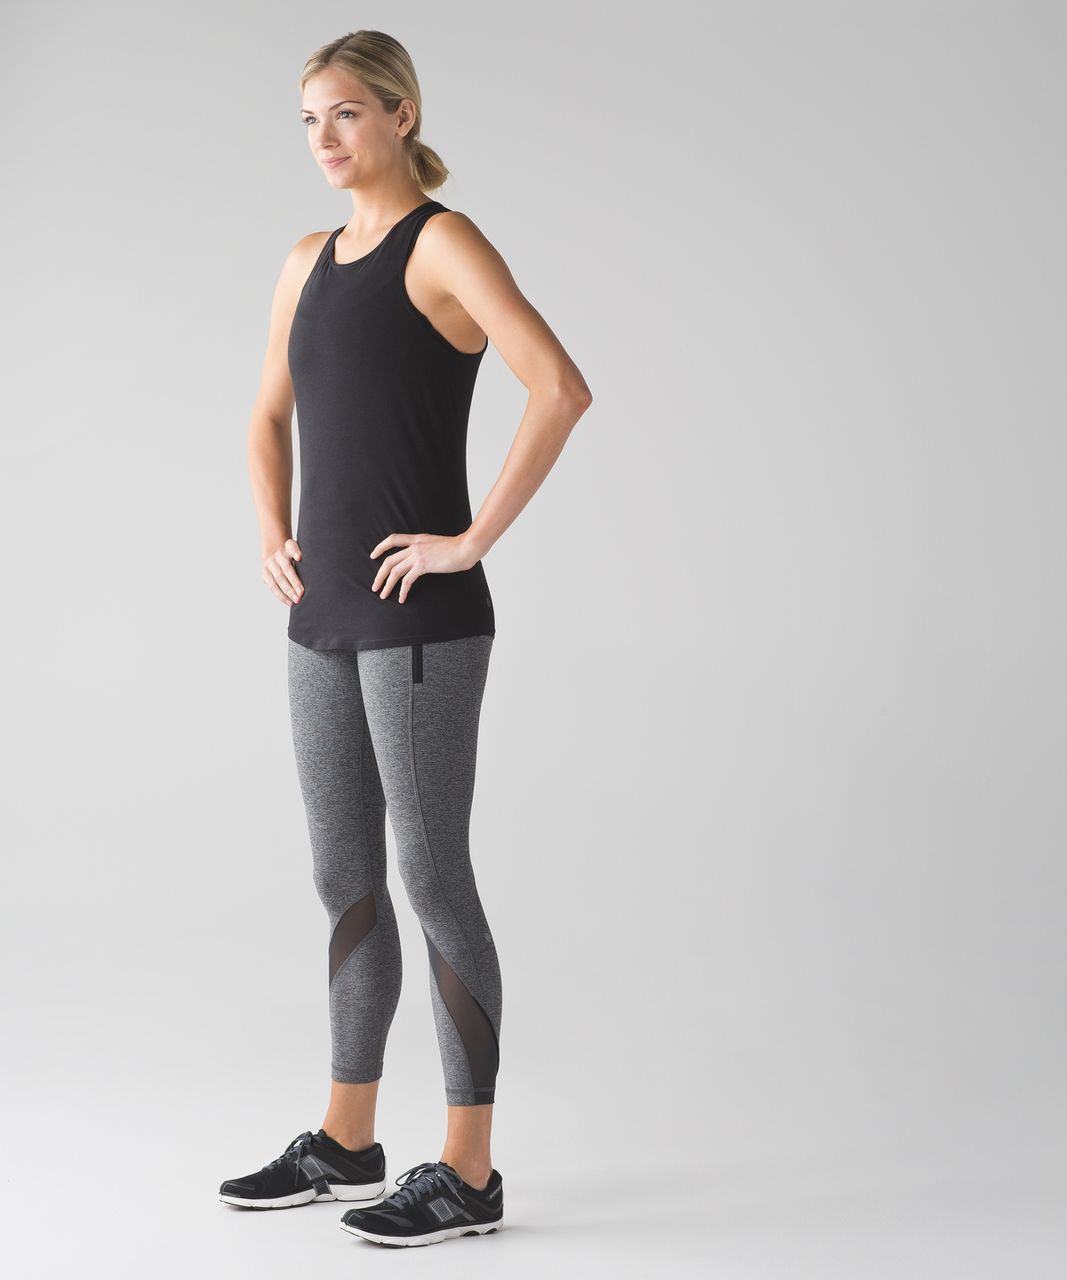 Lululemon Physically Fit Tank - Black